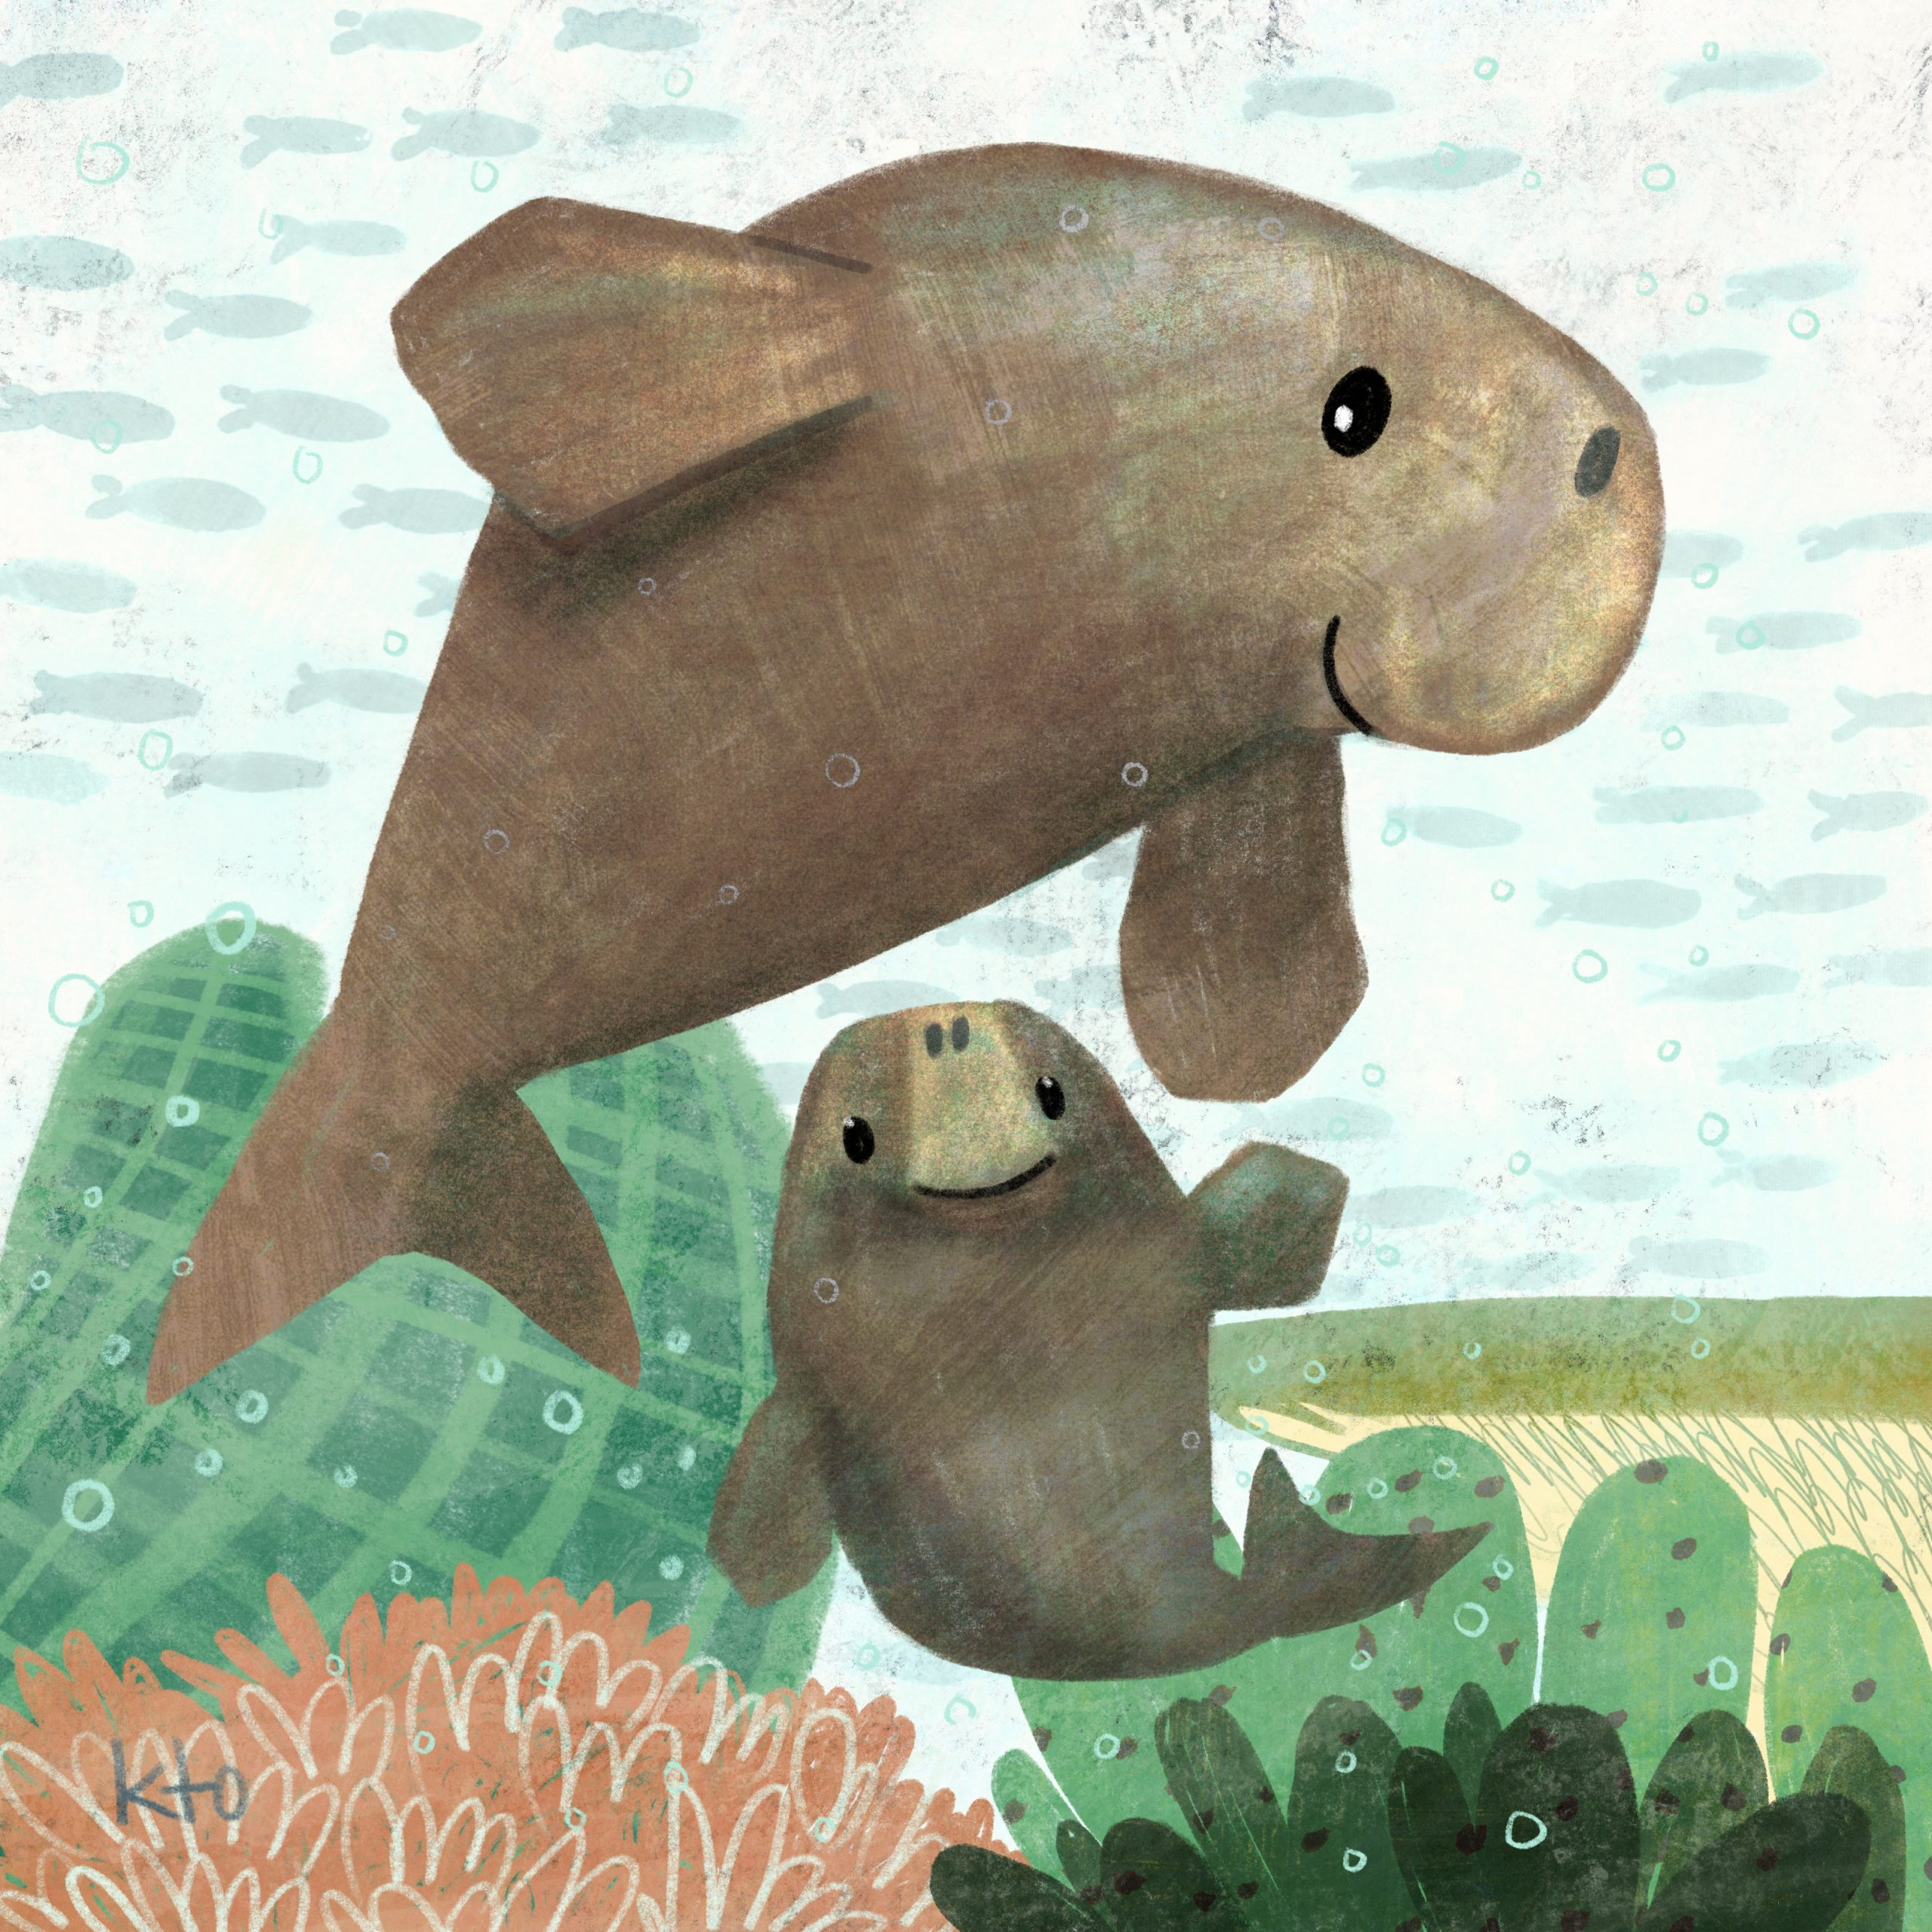 Two brown dugongs little and big clearly both smiling (the little one face on), with a background of seagrass and coral in green and orange on a pale blue fish patterned background.